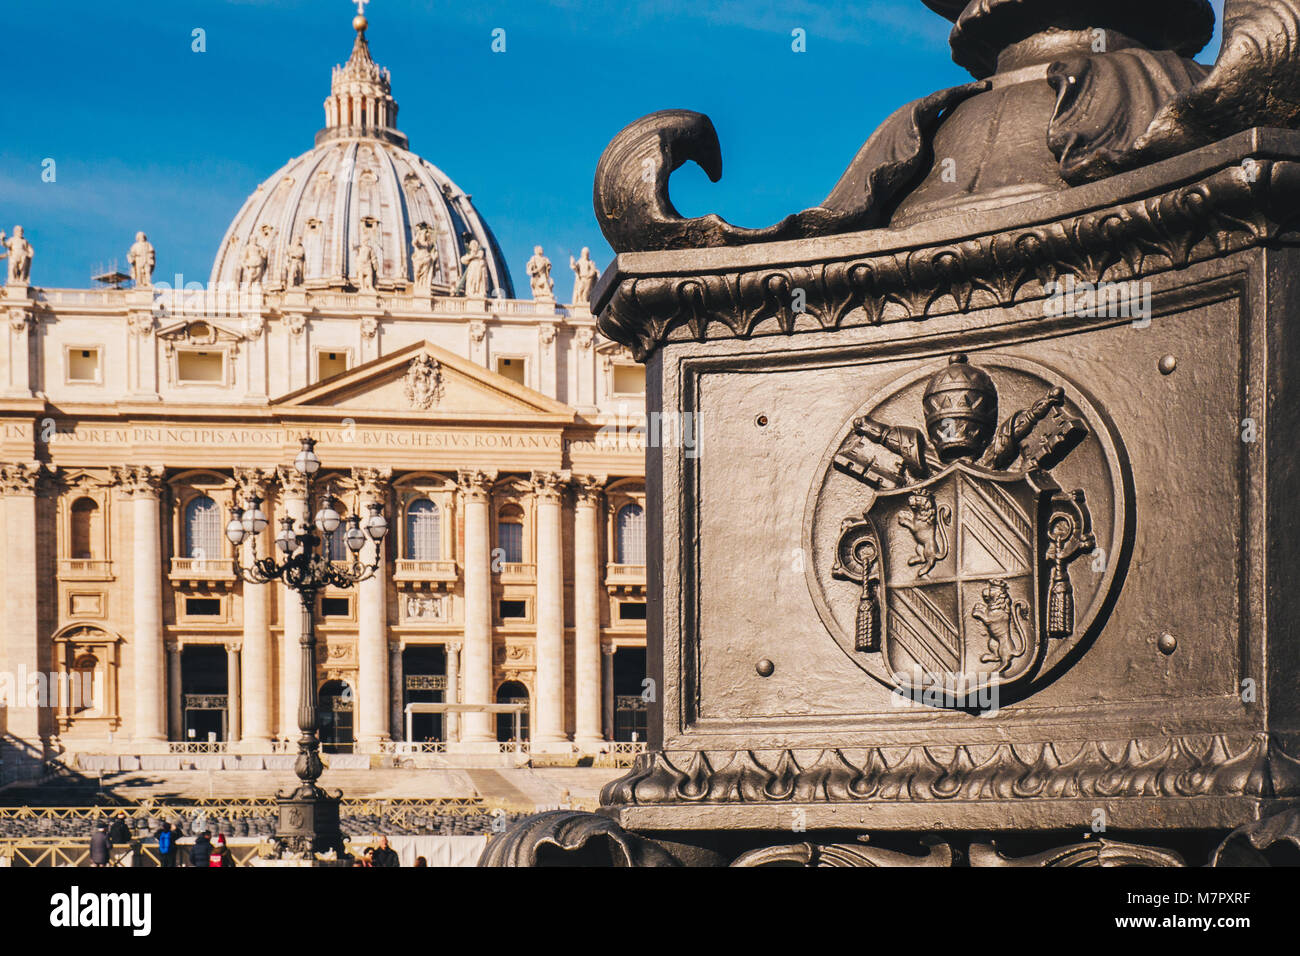 St. Peter's square and Saint Peter's Basilica in the Vatican City in Rome, Italy. Vatican symbol detail - Stock Image